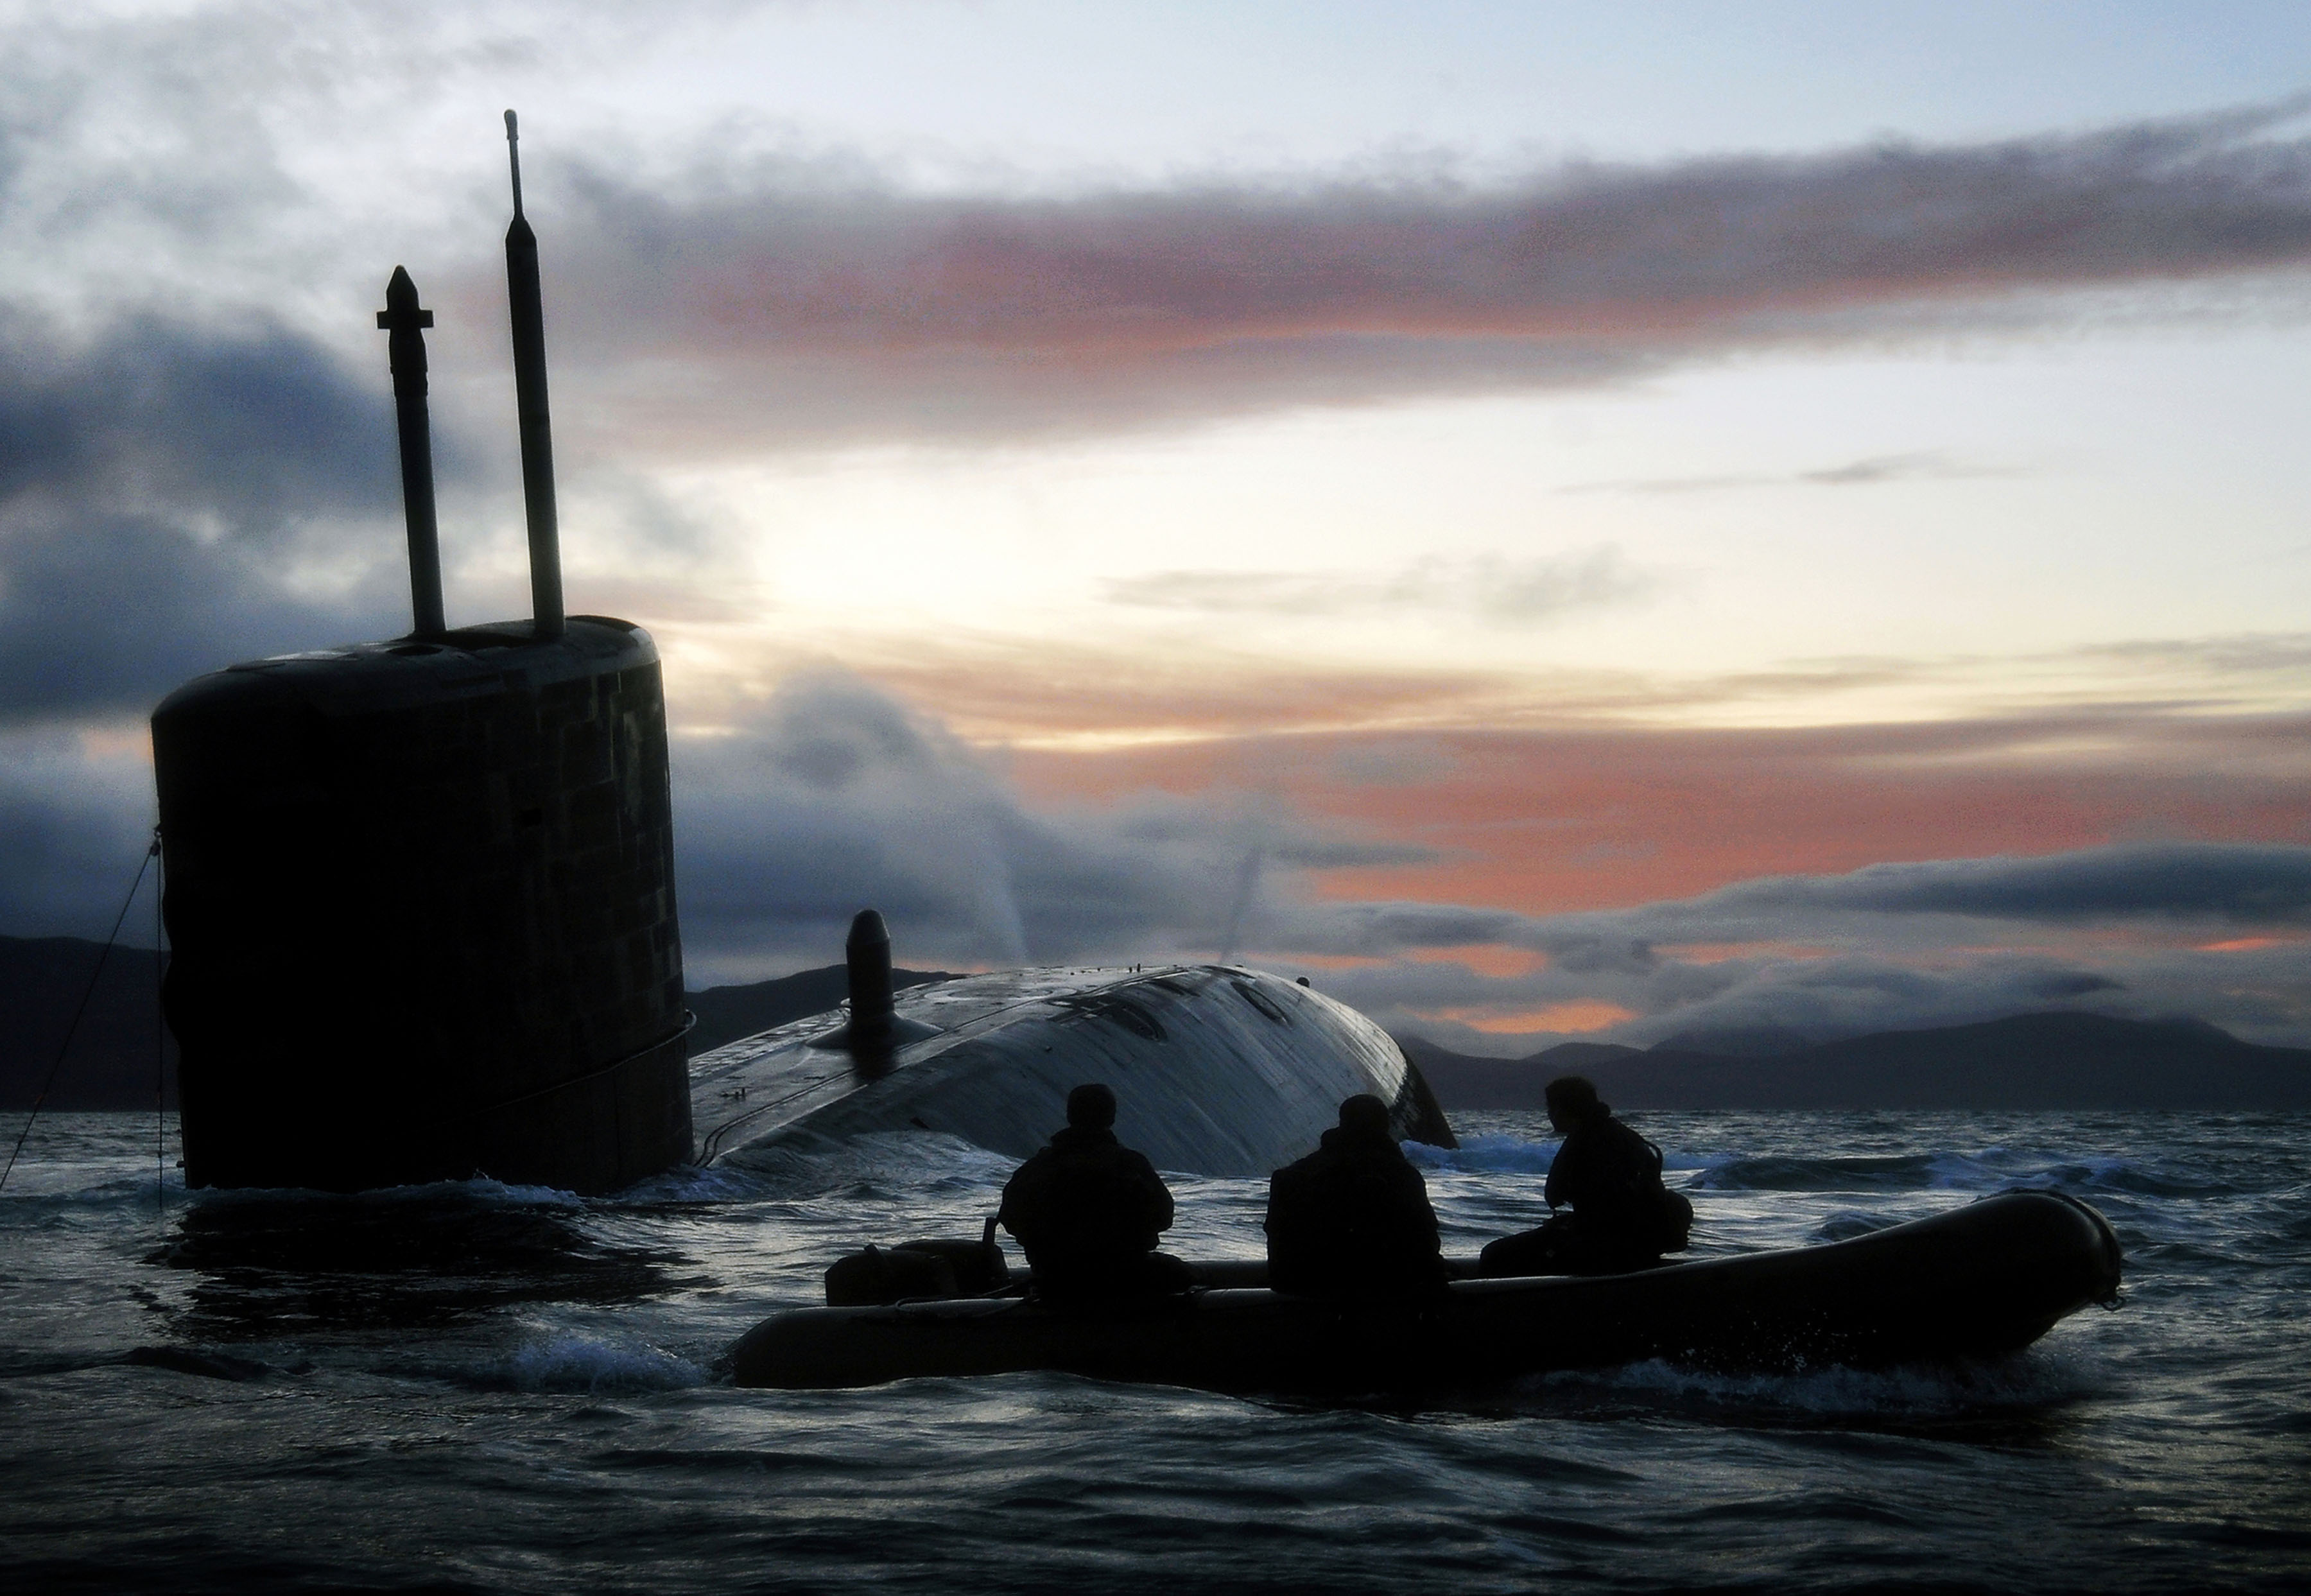 http://upload.wikimedia.org/wikipedia/commons/7/77/Royal_Navy_Submarine_HMS_Talent_Conducts_Surfacing_Drills_in_Scotland_MOD_45153473.jpg